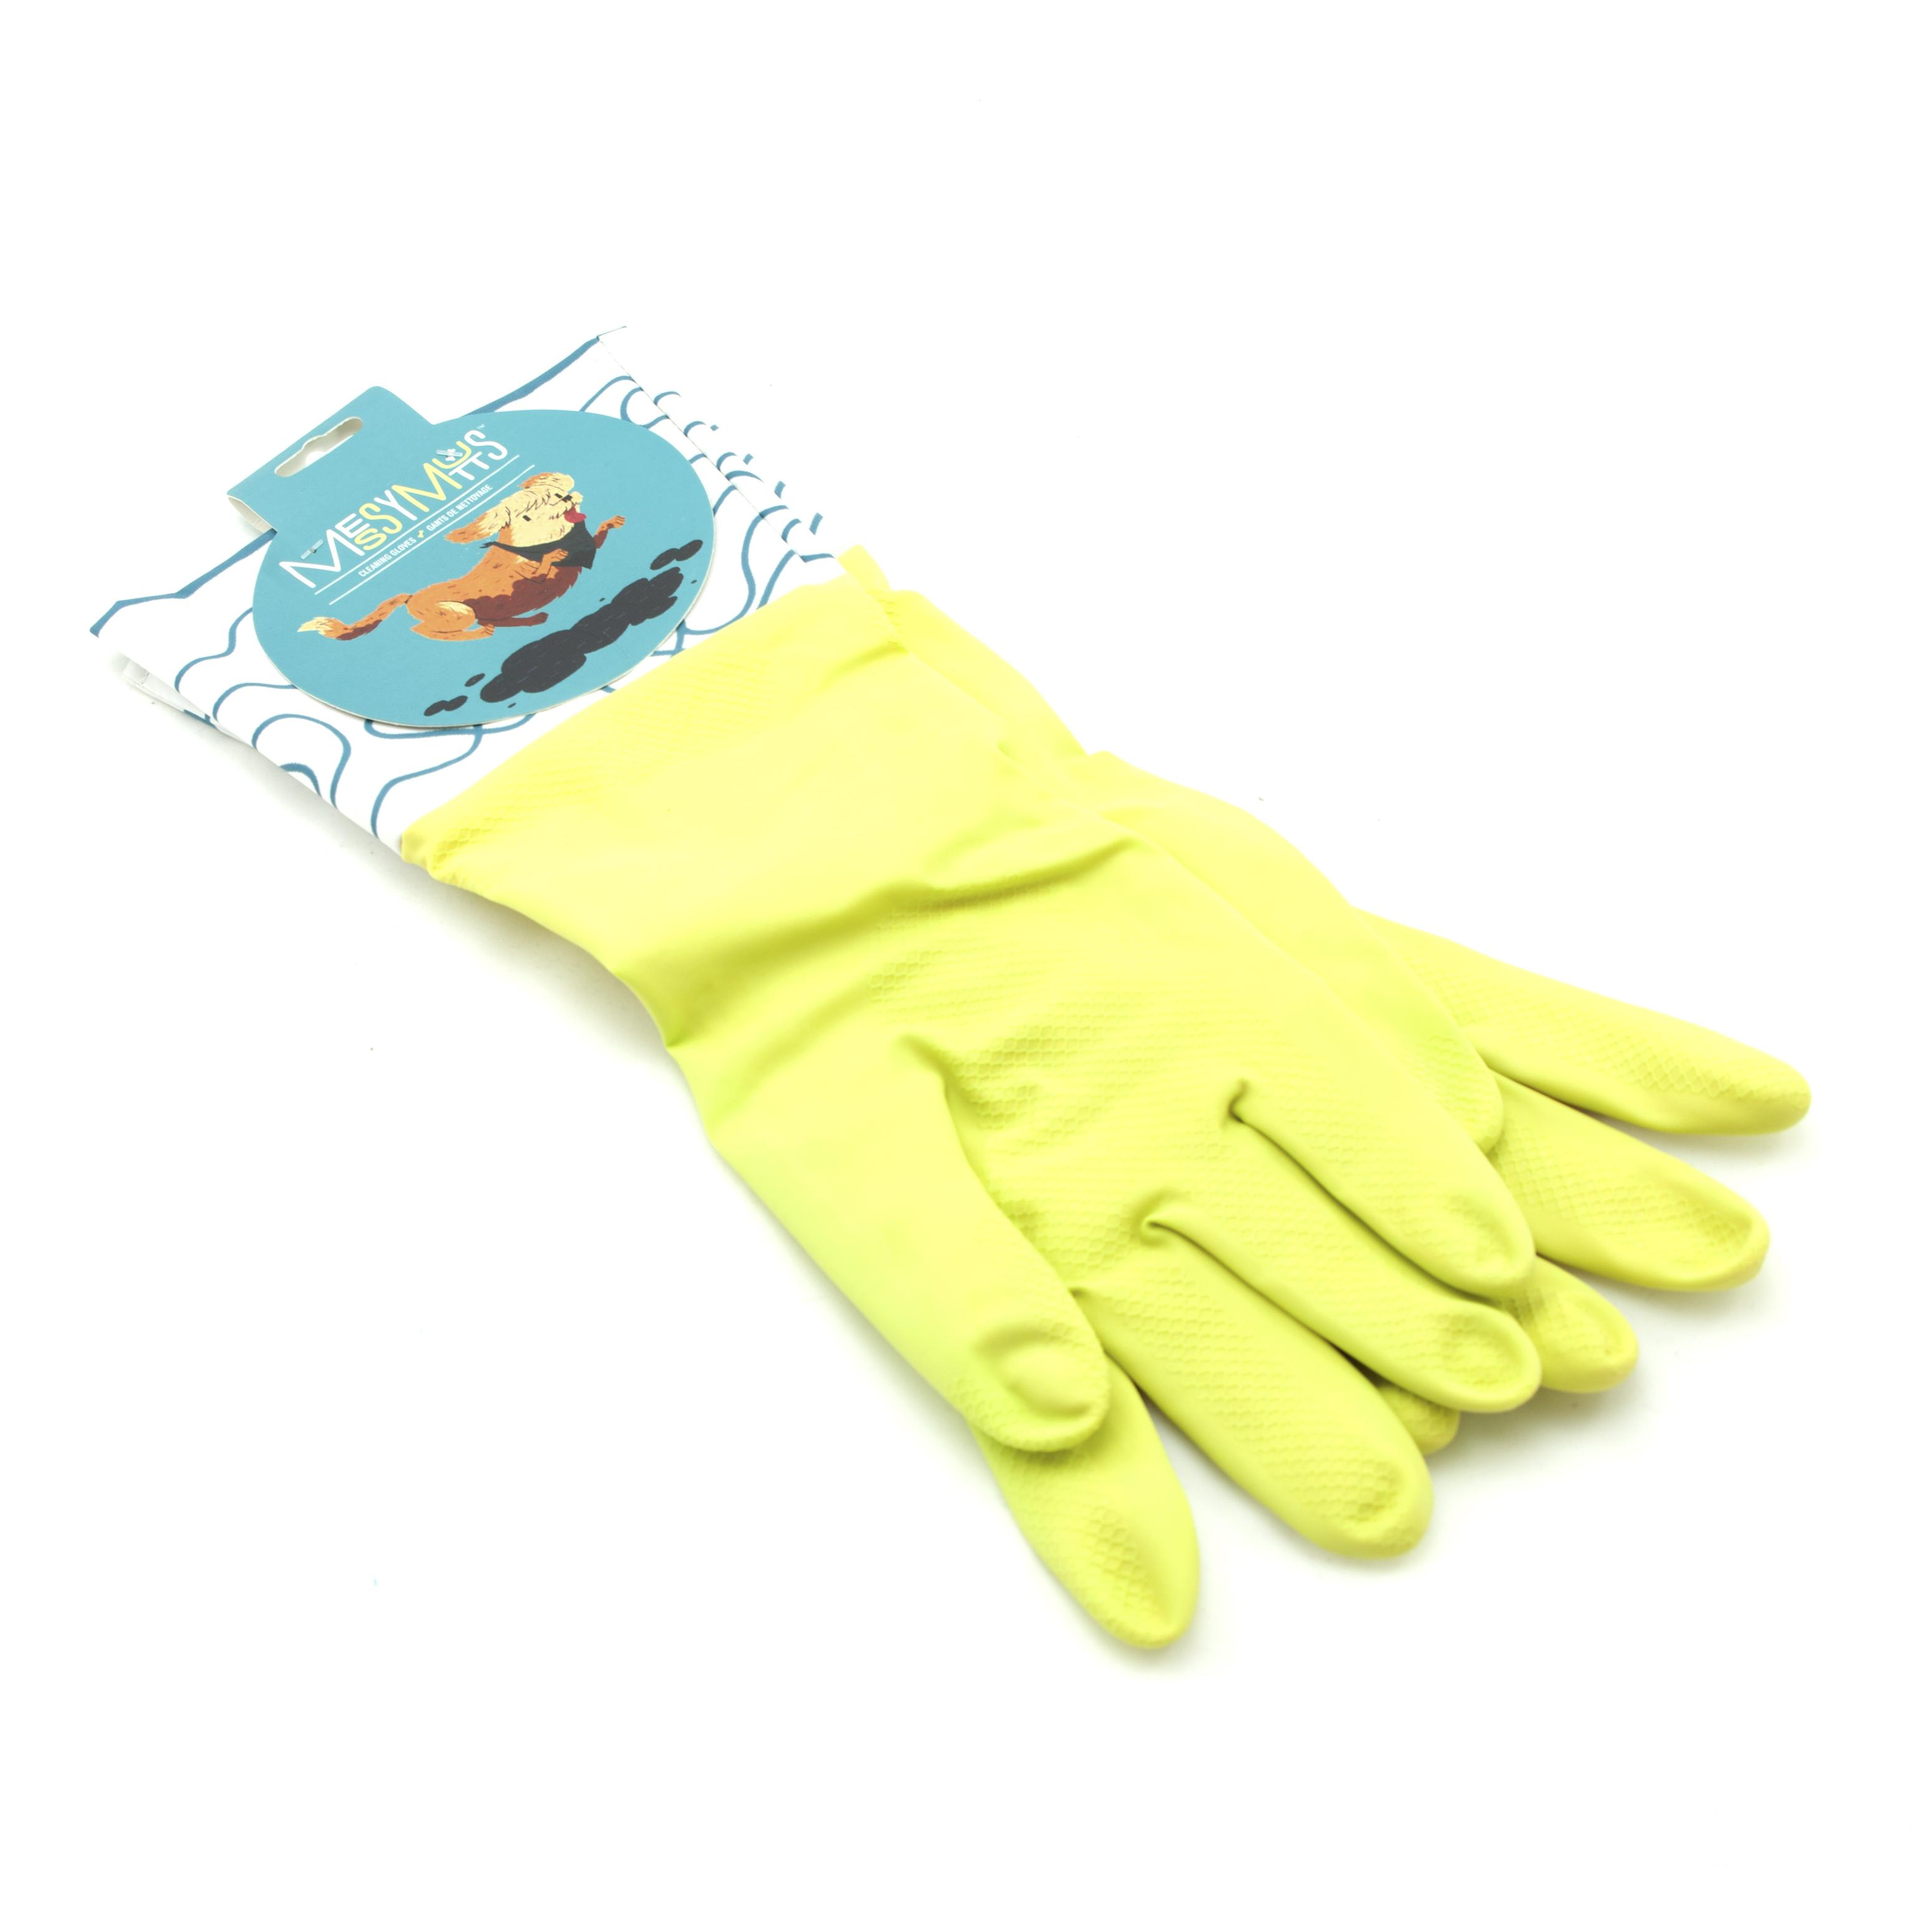 Messy Mutts Cotton Lined Rubber Washing Gloves, Green, Large